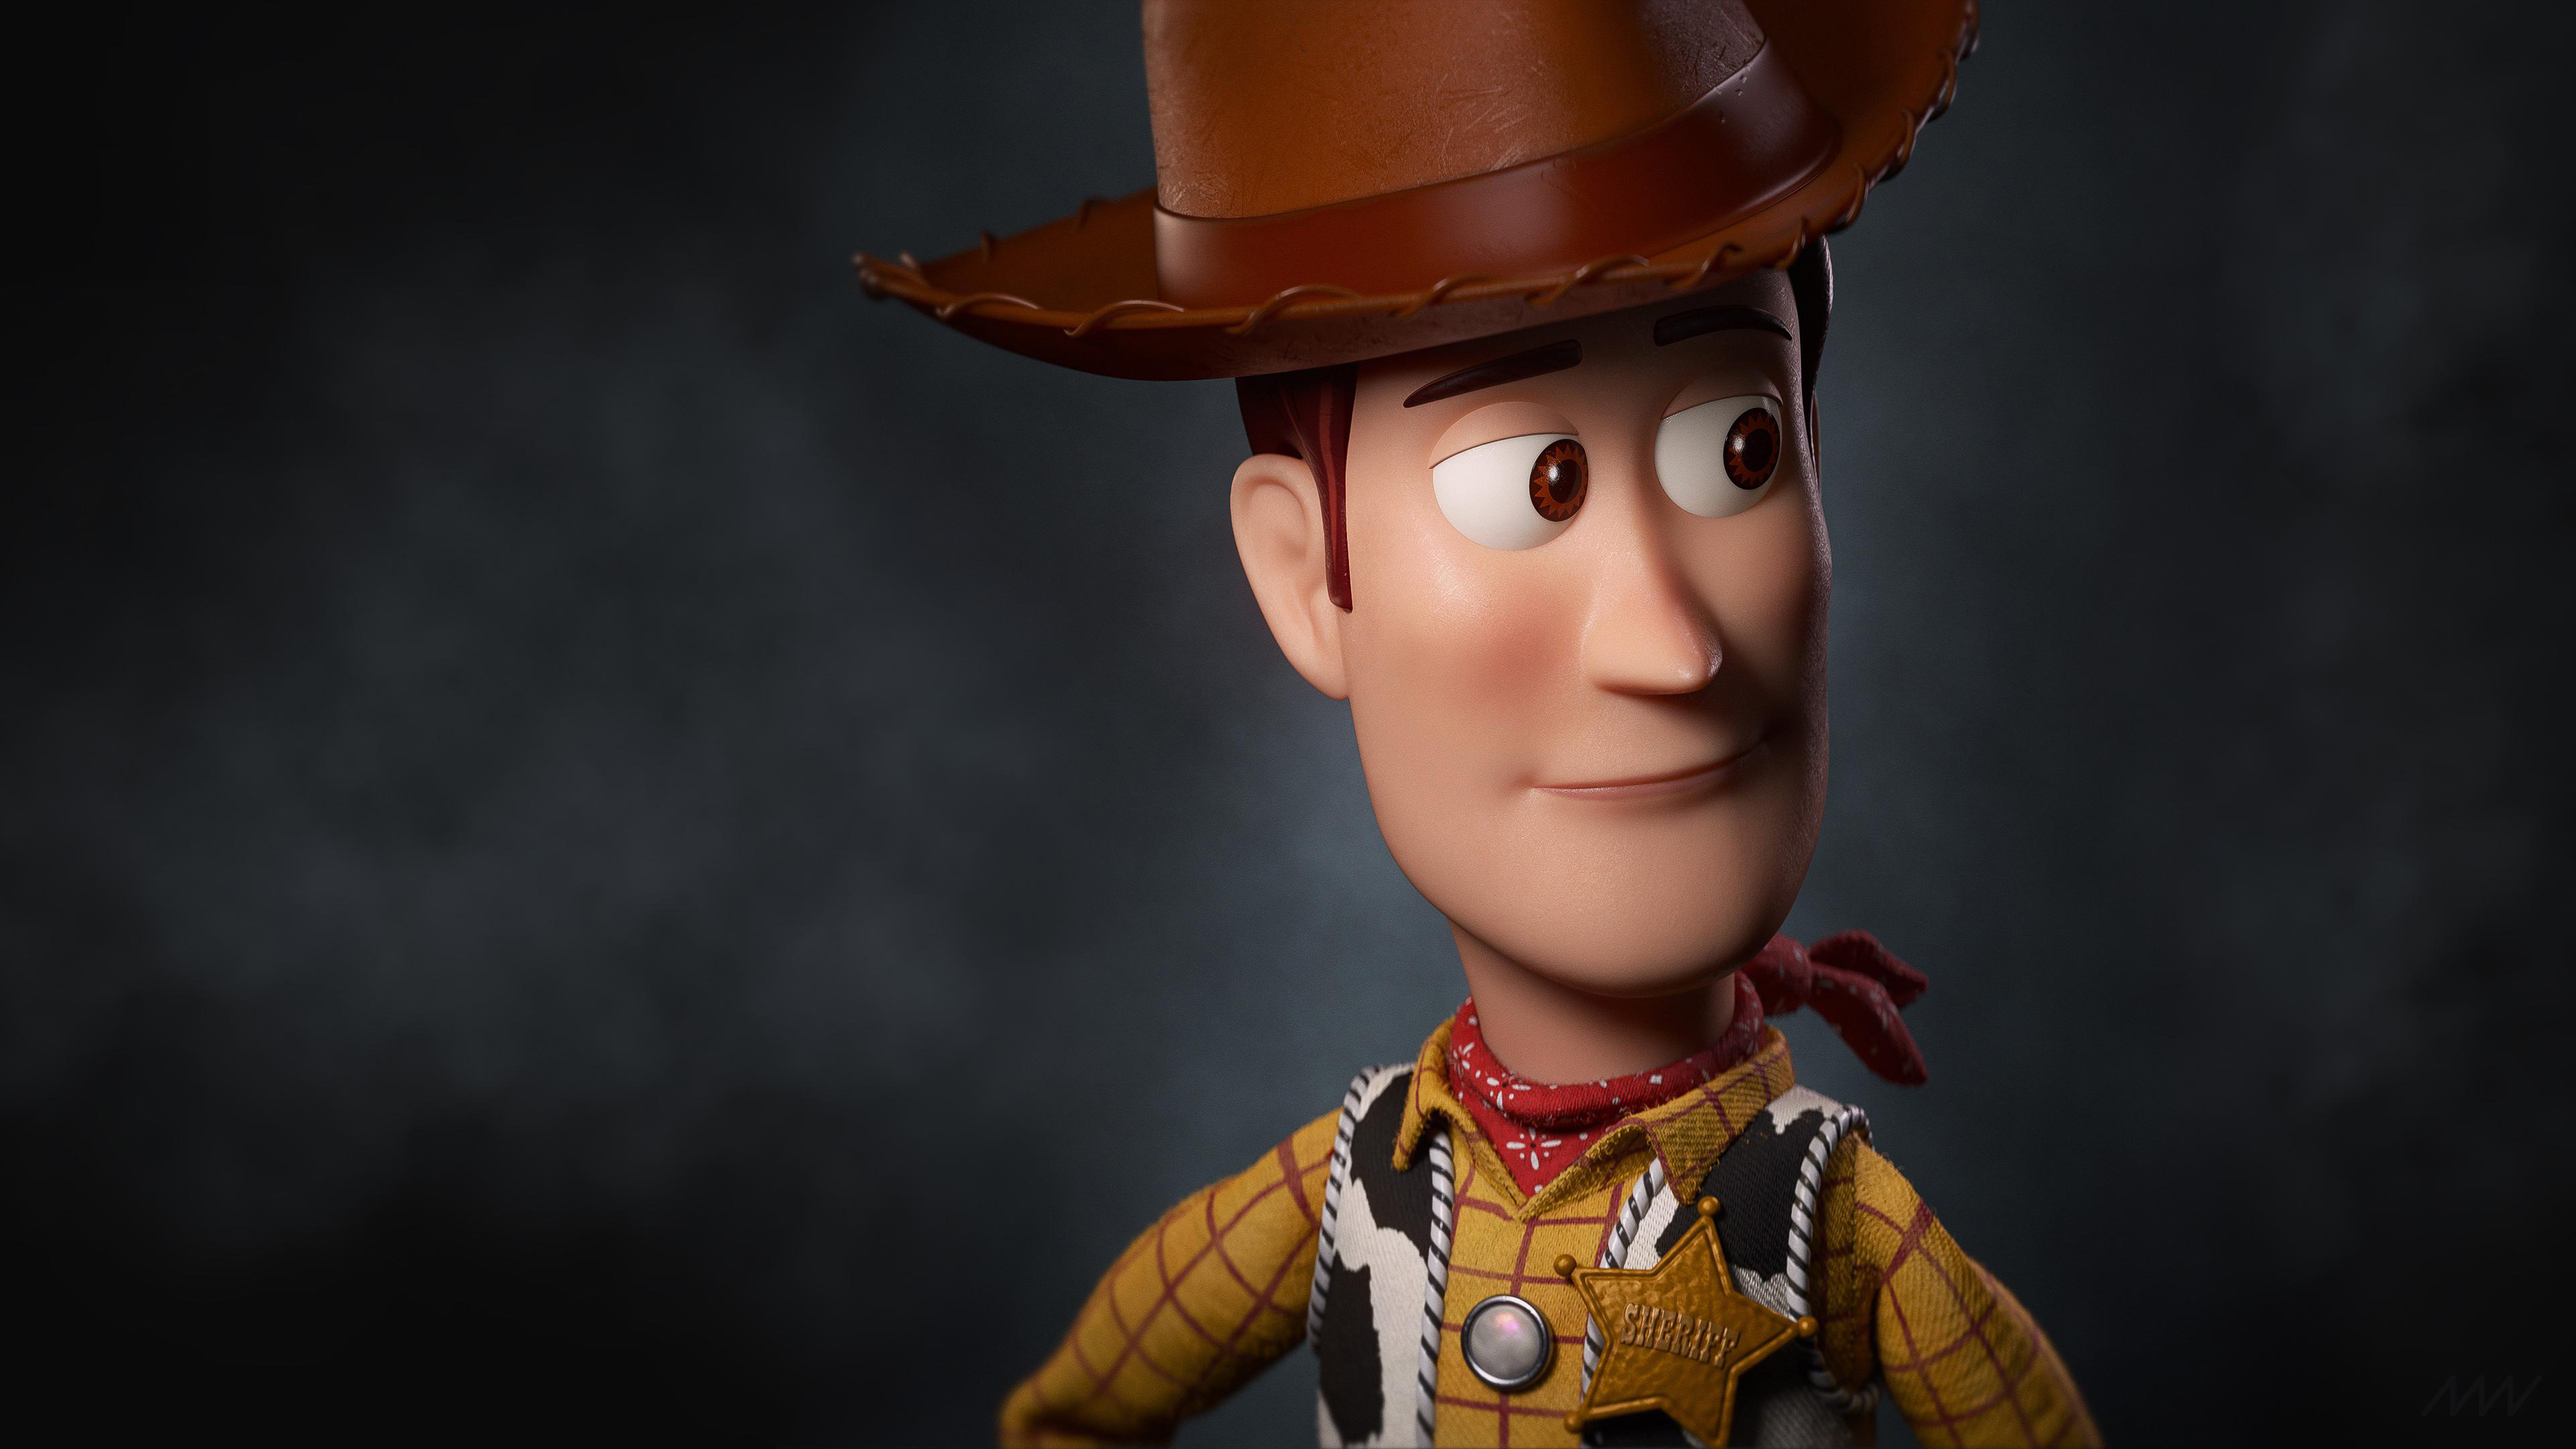 woody toy story 4 1563220838 - Woody Toy Story 4 - toy story 4 wallpapers, movies wallpapers, hd-wallpapers, animated movies wallpapers, 4k-wallpapers, 2019 movies wallpapers